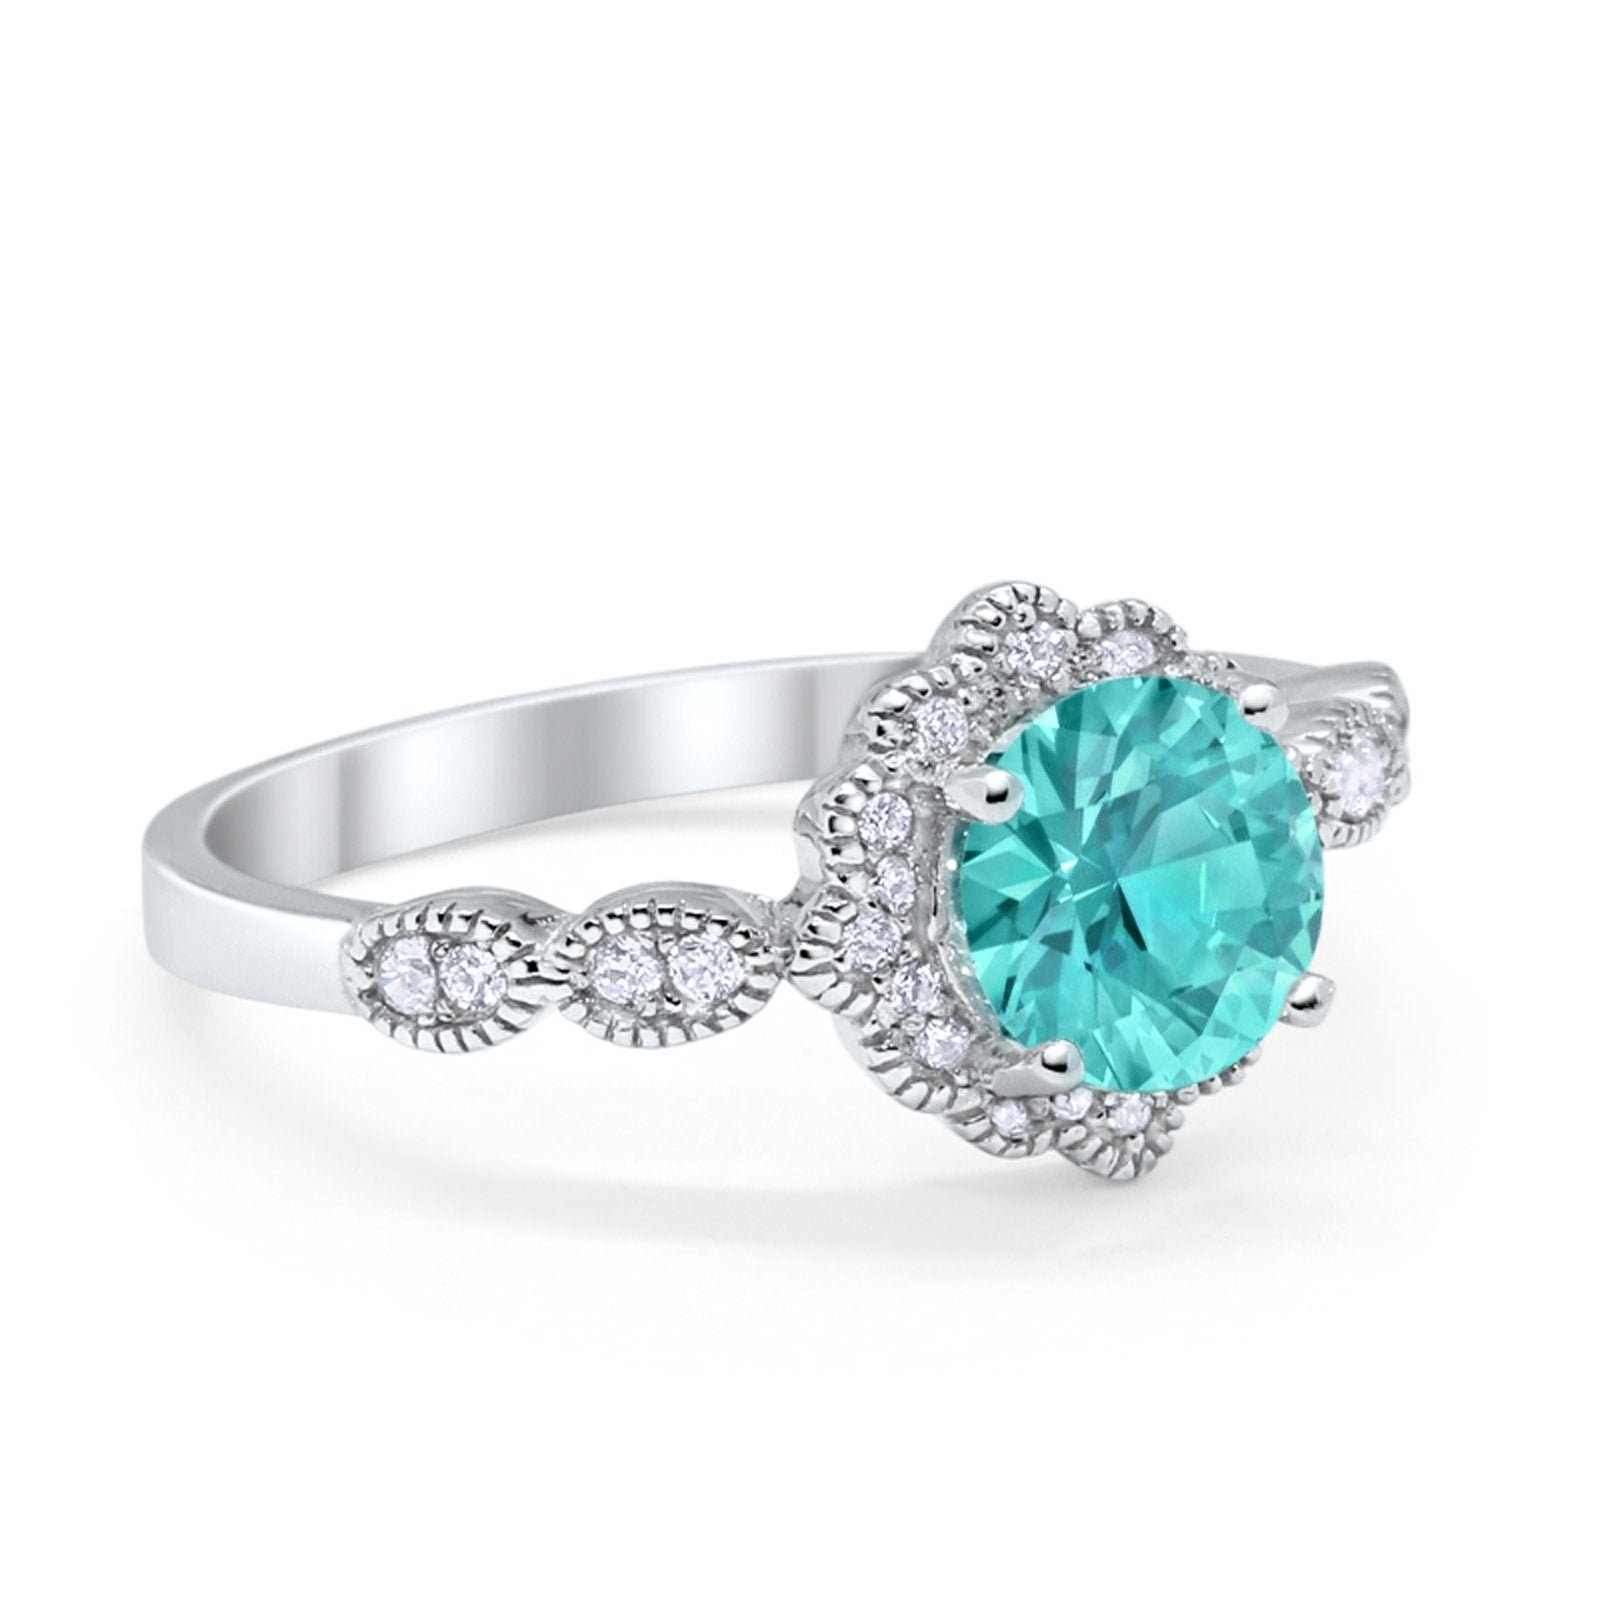 Halo Floral Art Deco Engagement Ring Simulated Paraiba Tourmaline CZ 925 Sterling Silver